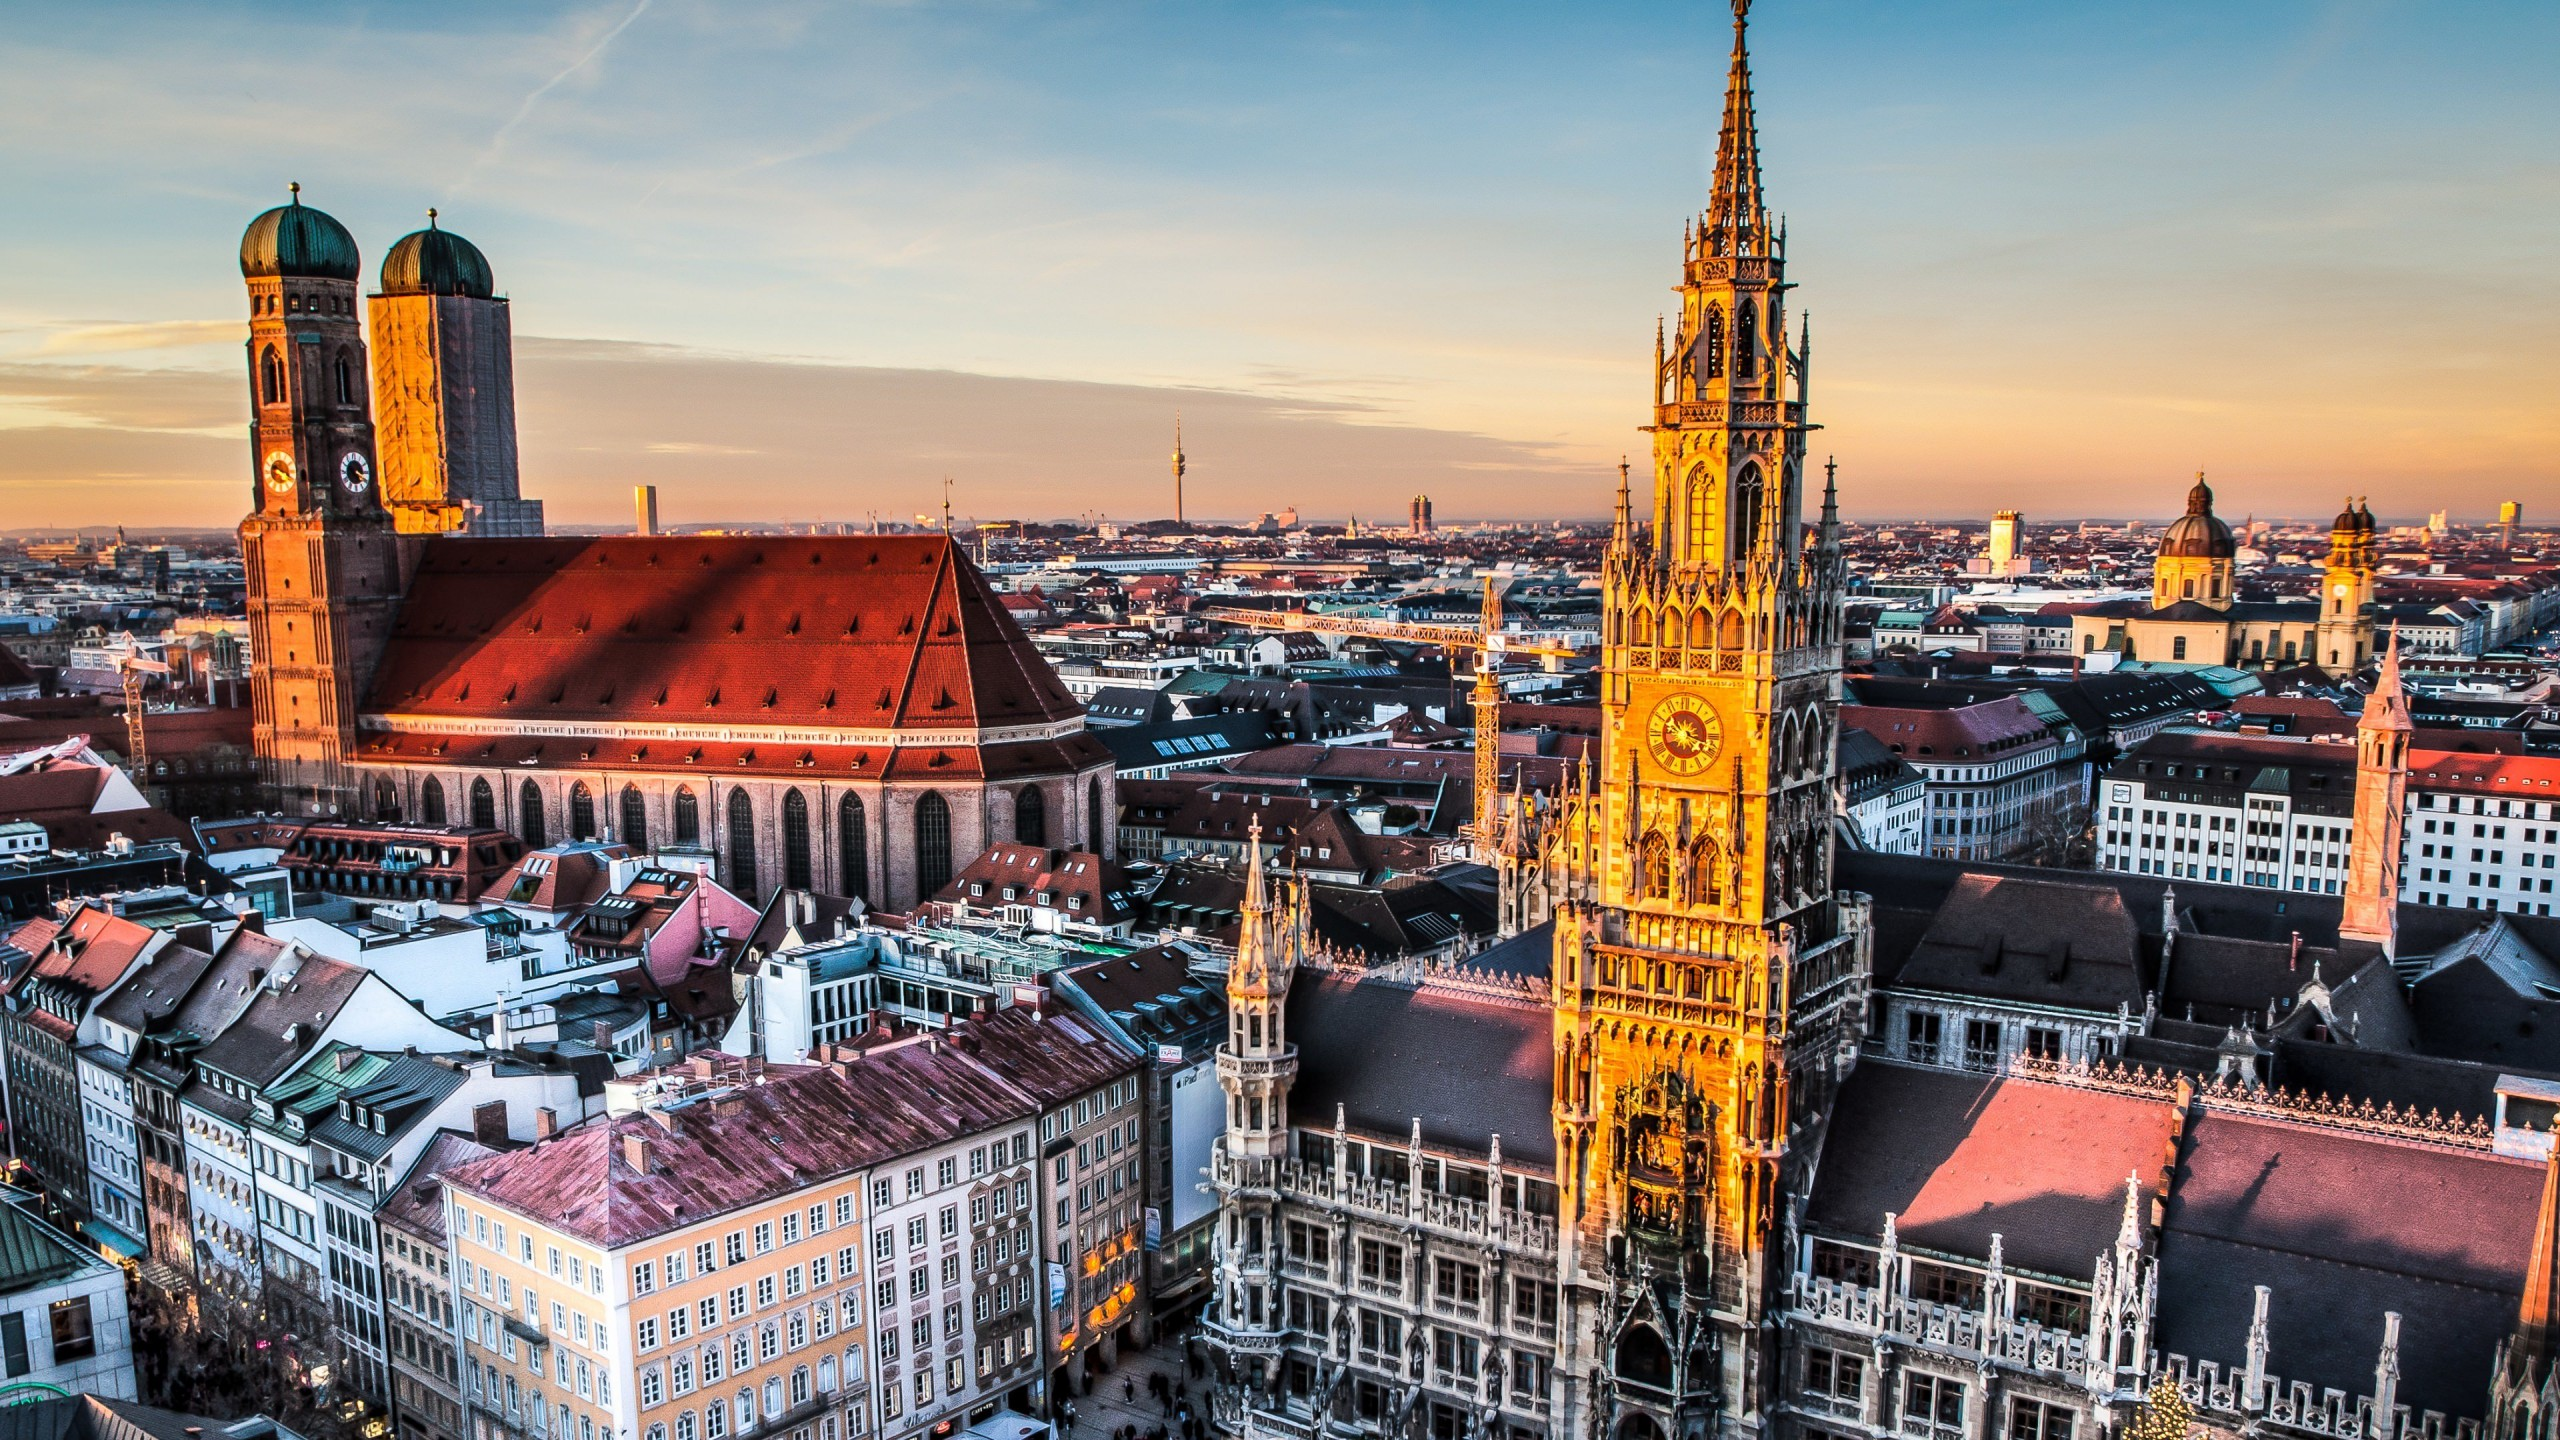 Munich Skyline Wallpaper for Social Media YouTube Channel Art